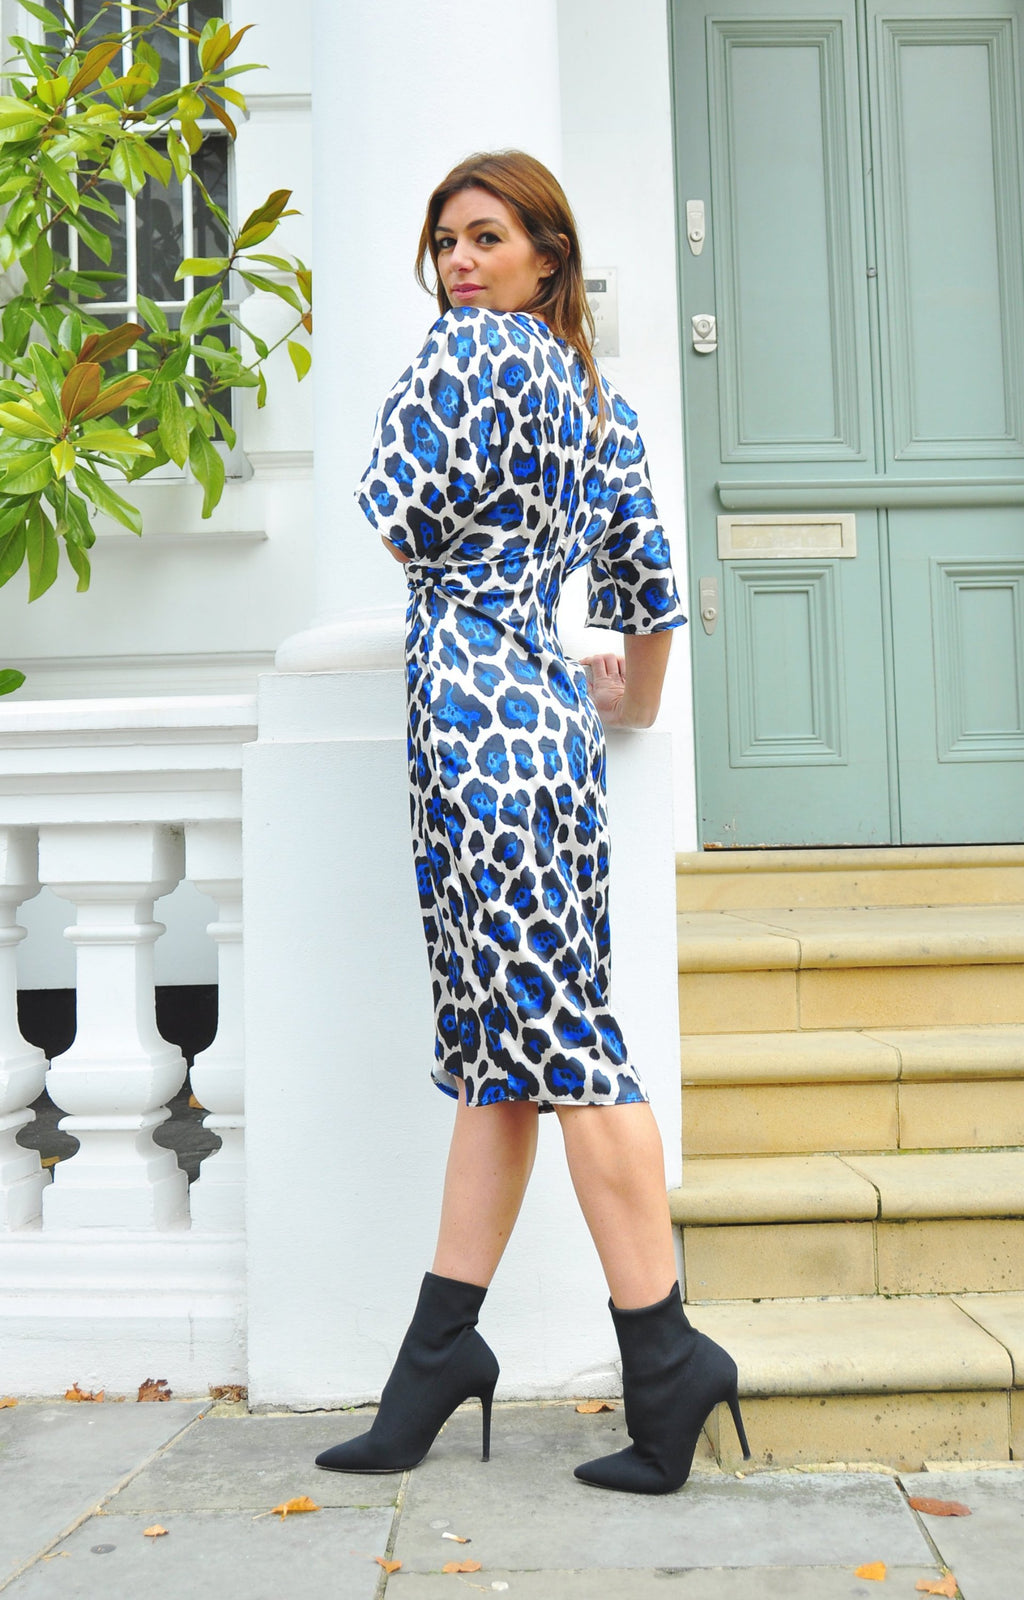 Stefie Dress in Blue Leopard